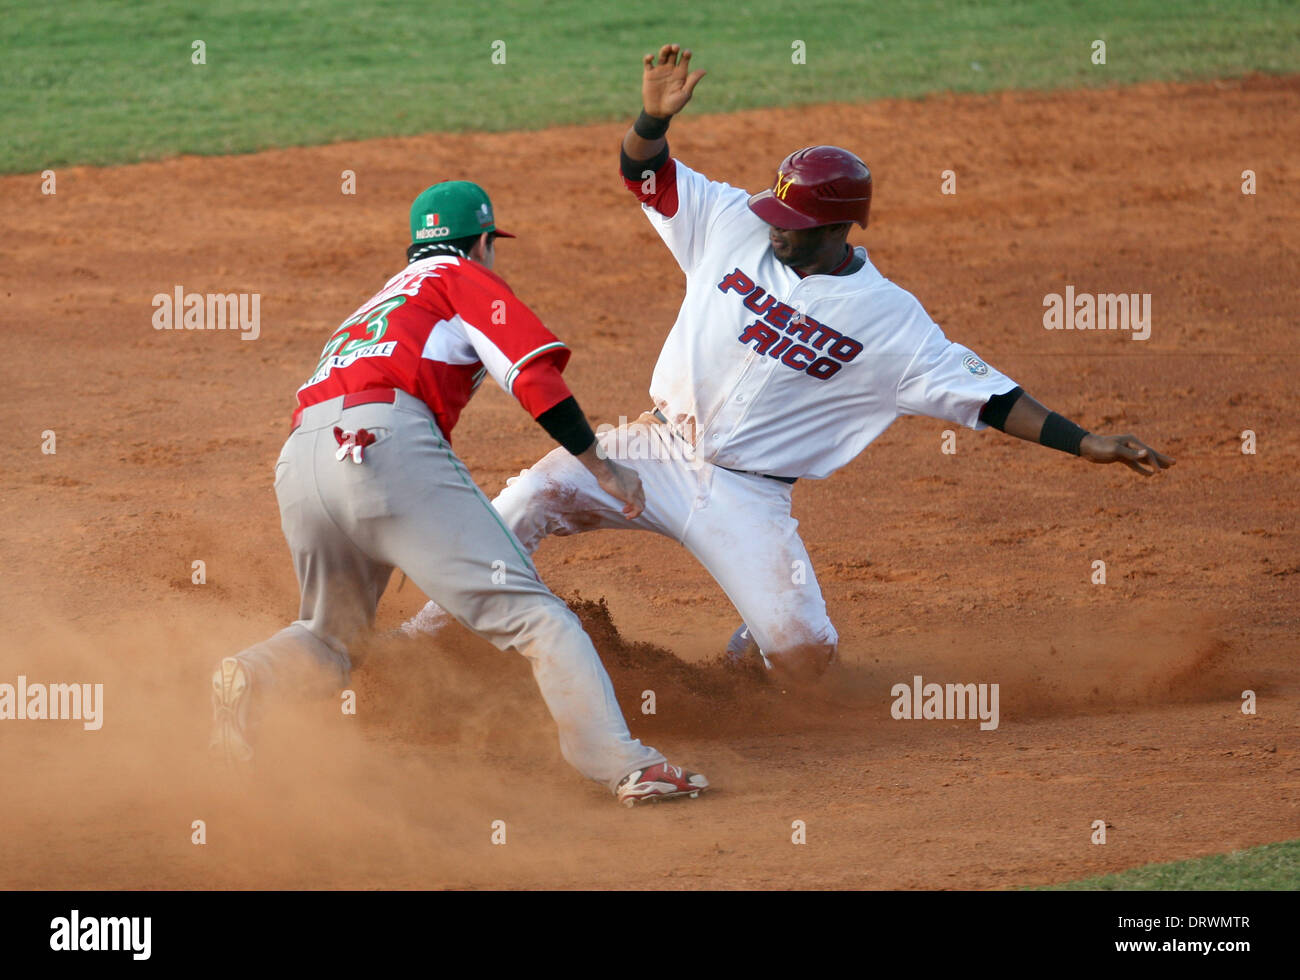 Sweeps 2014 Stock Photos & Sweeps 2014 Stock Images - Alamy